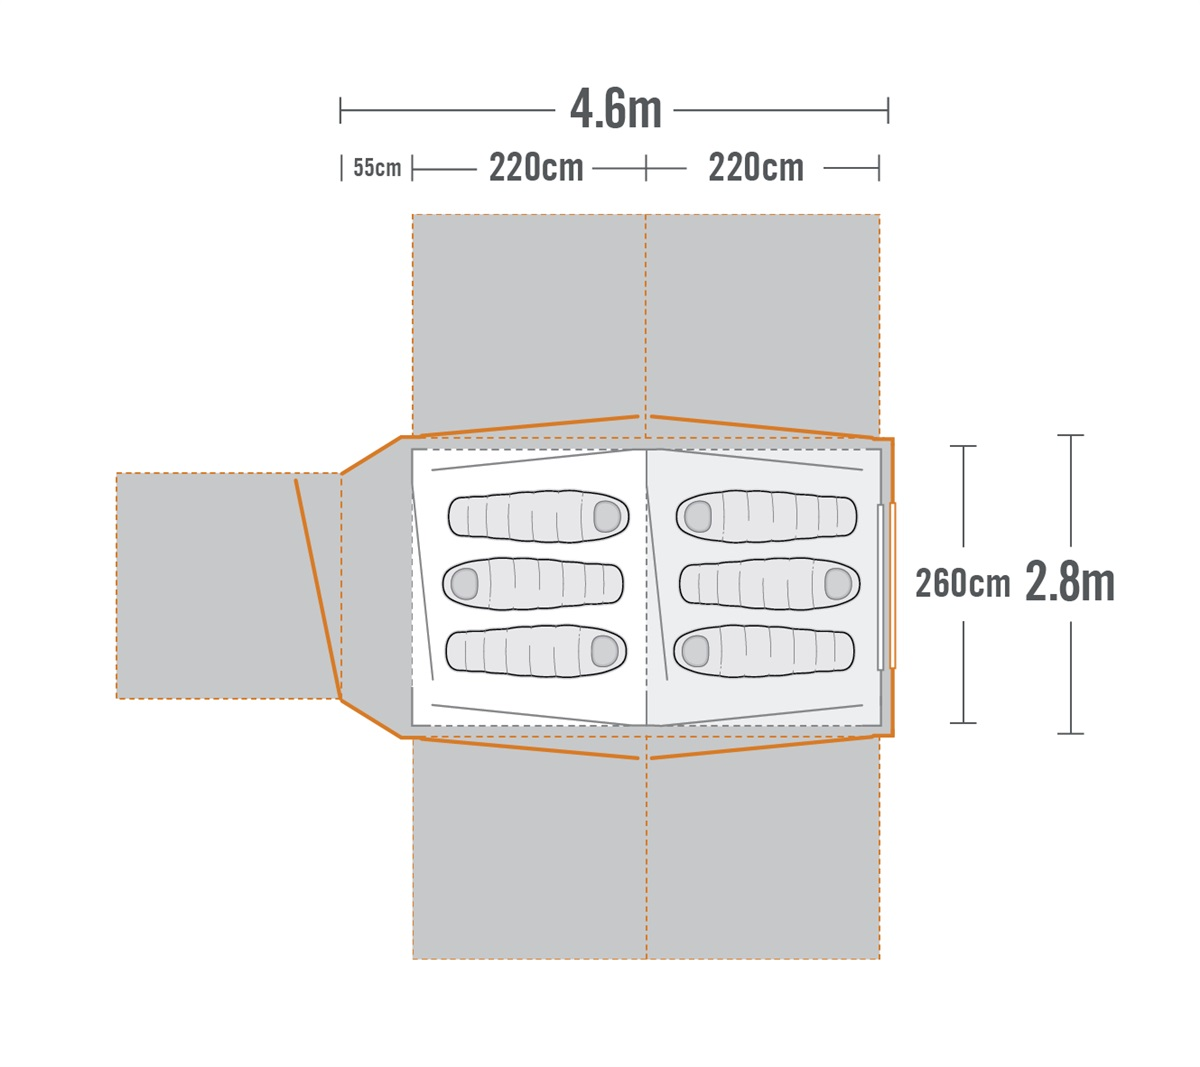 Falcon 6 Air Family Dome Tent plan view